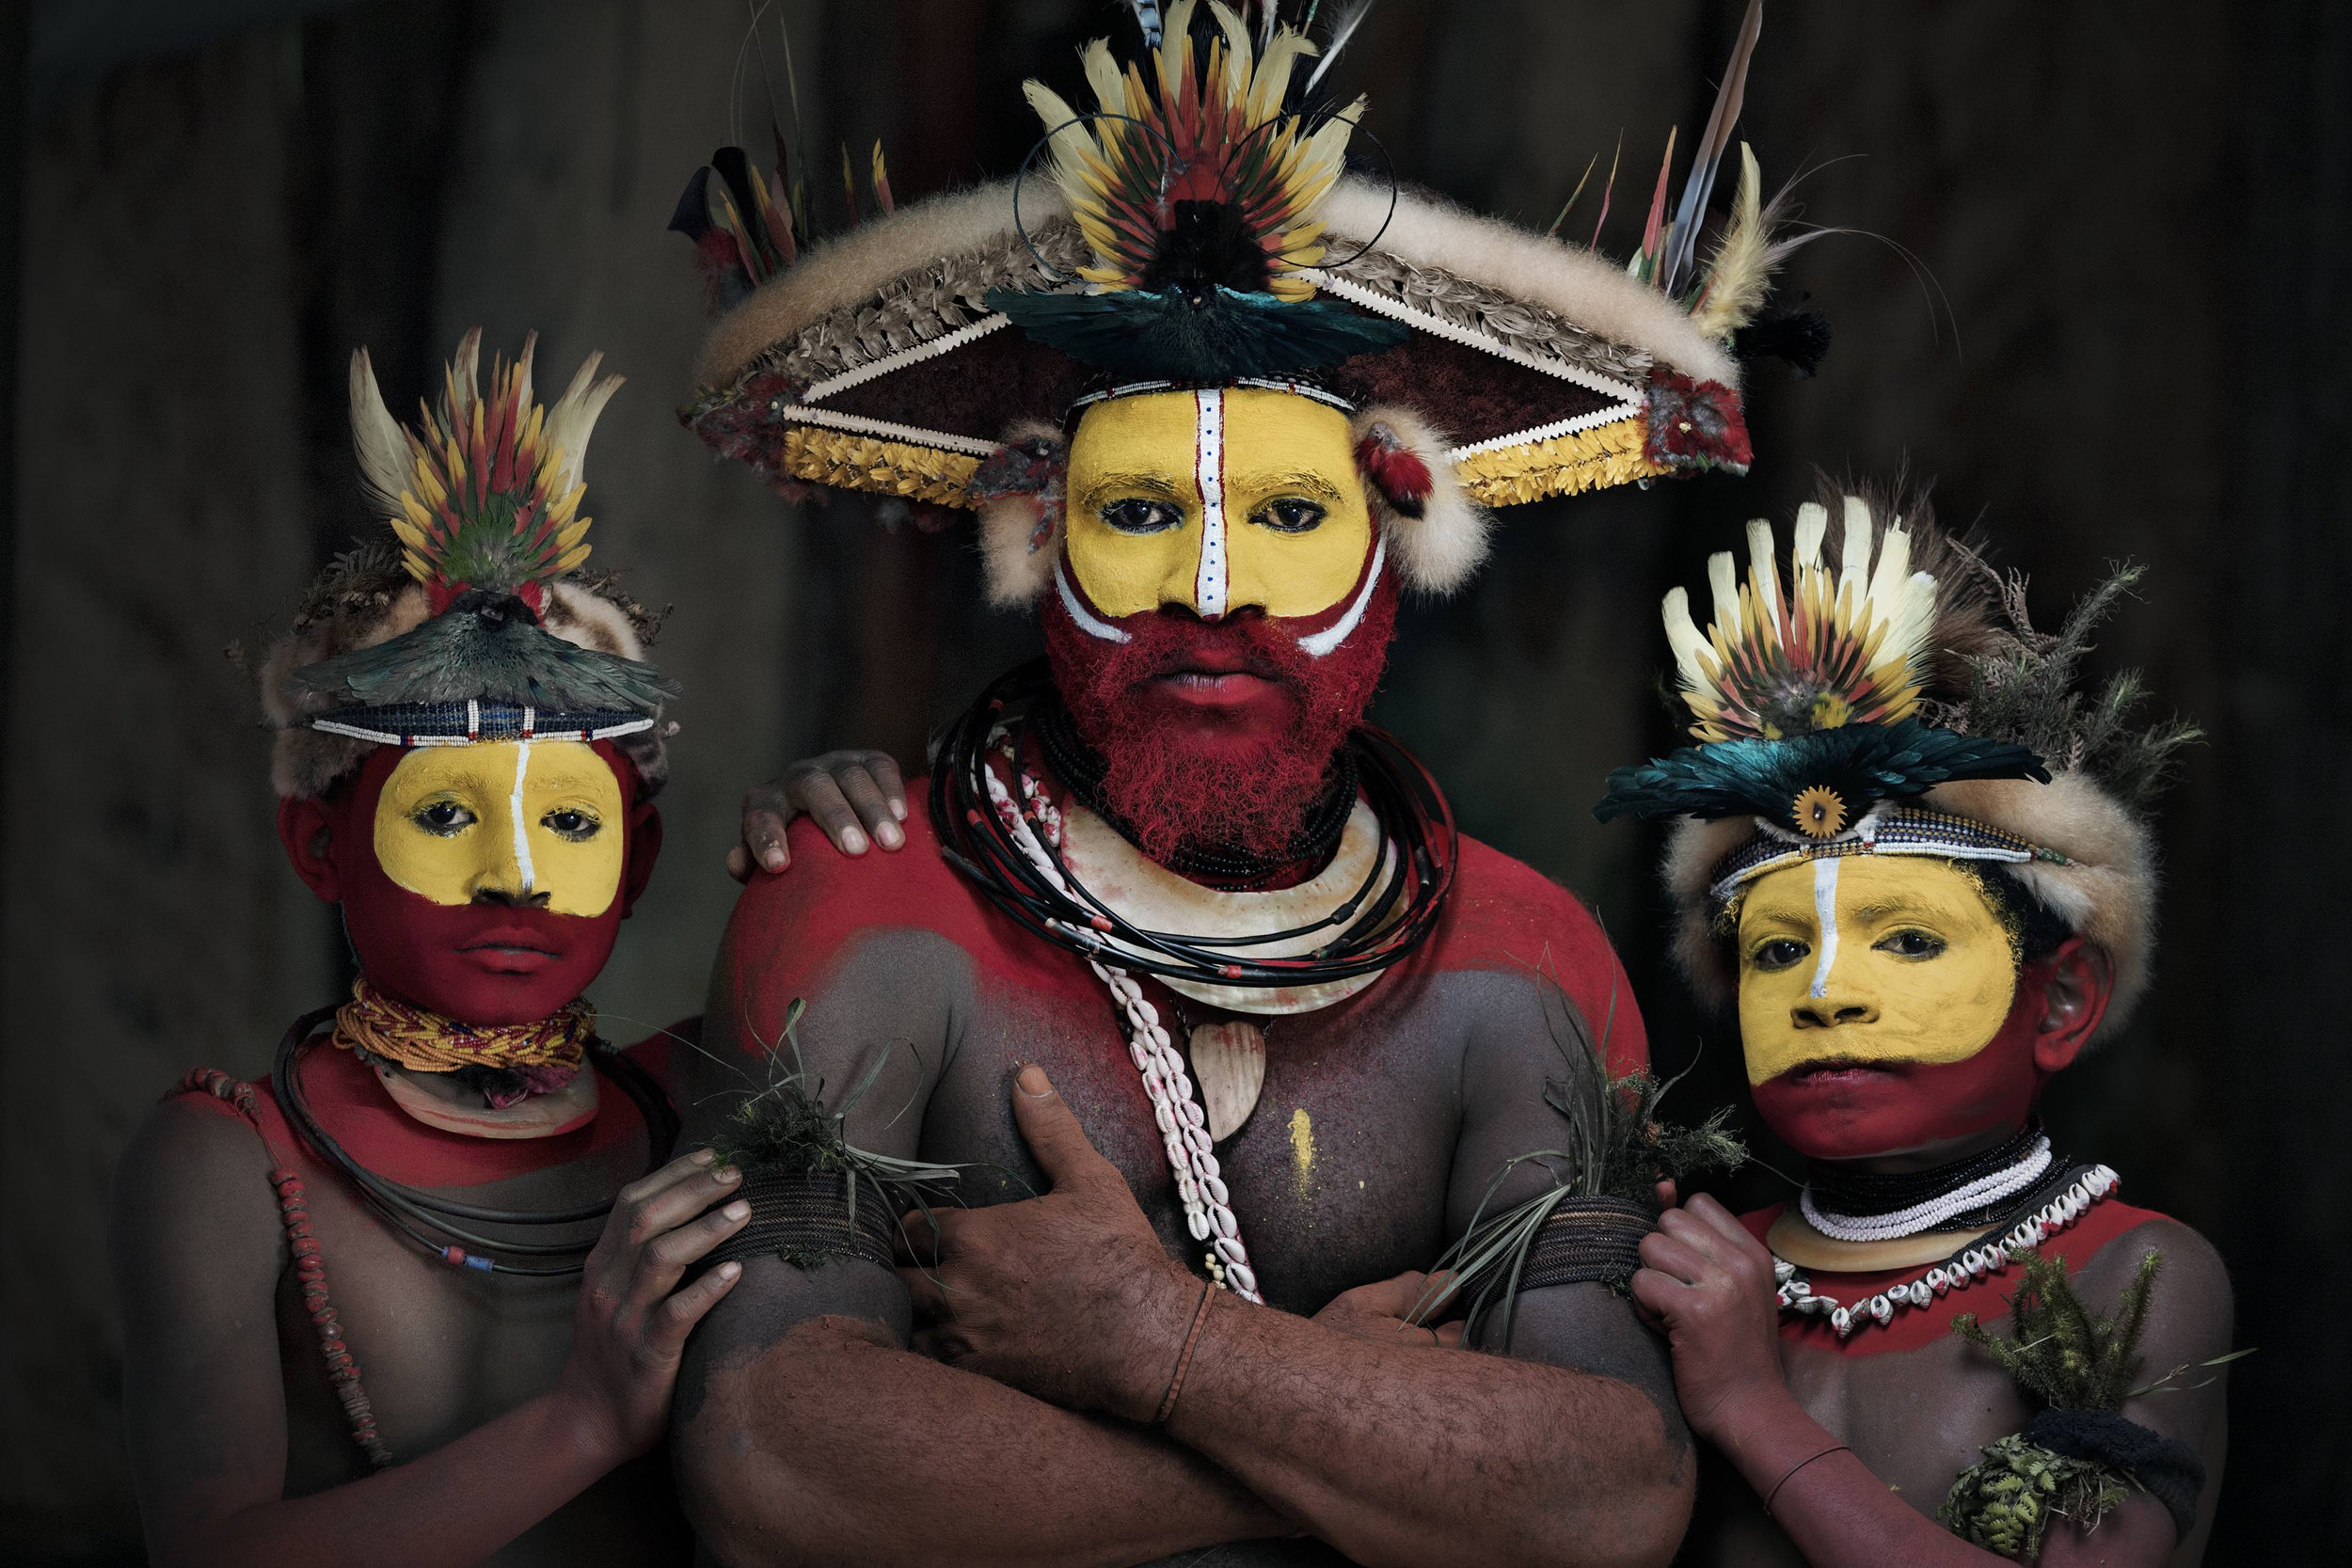 XXXIII 22 - Huli Wigman, Tari, Papua New Guinea, 2017  Homage to Humanity by Jimmy Nelson  Available in 4 sizes. Small editions.  Price on request